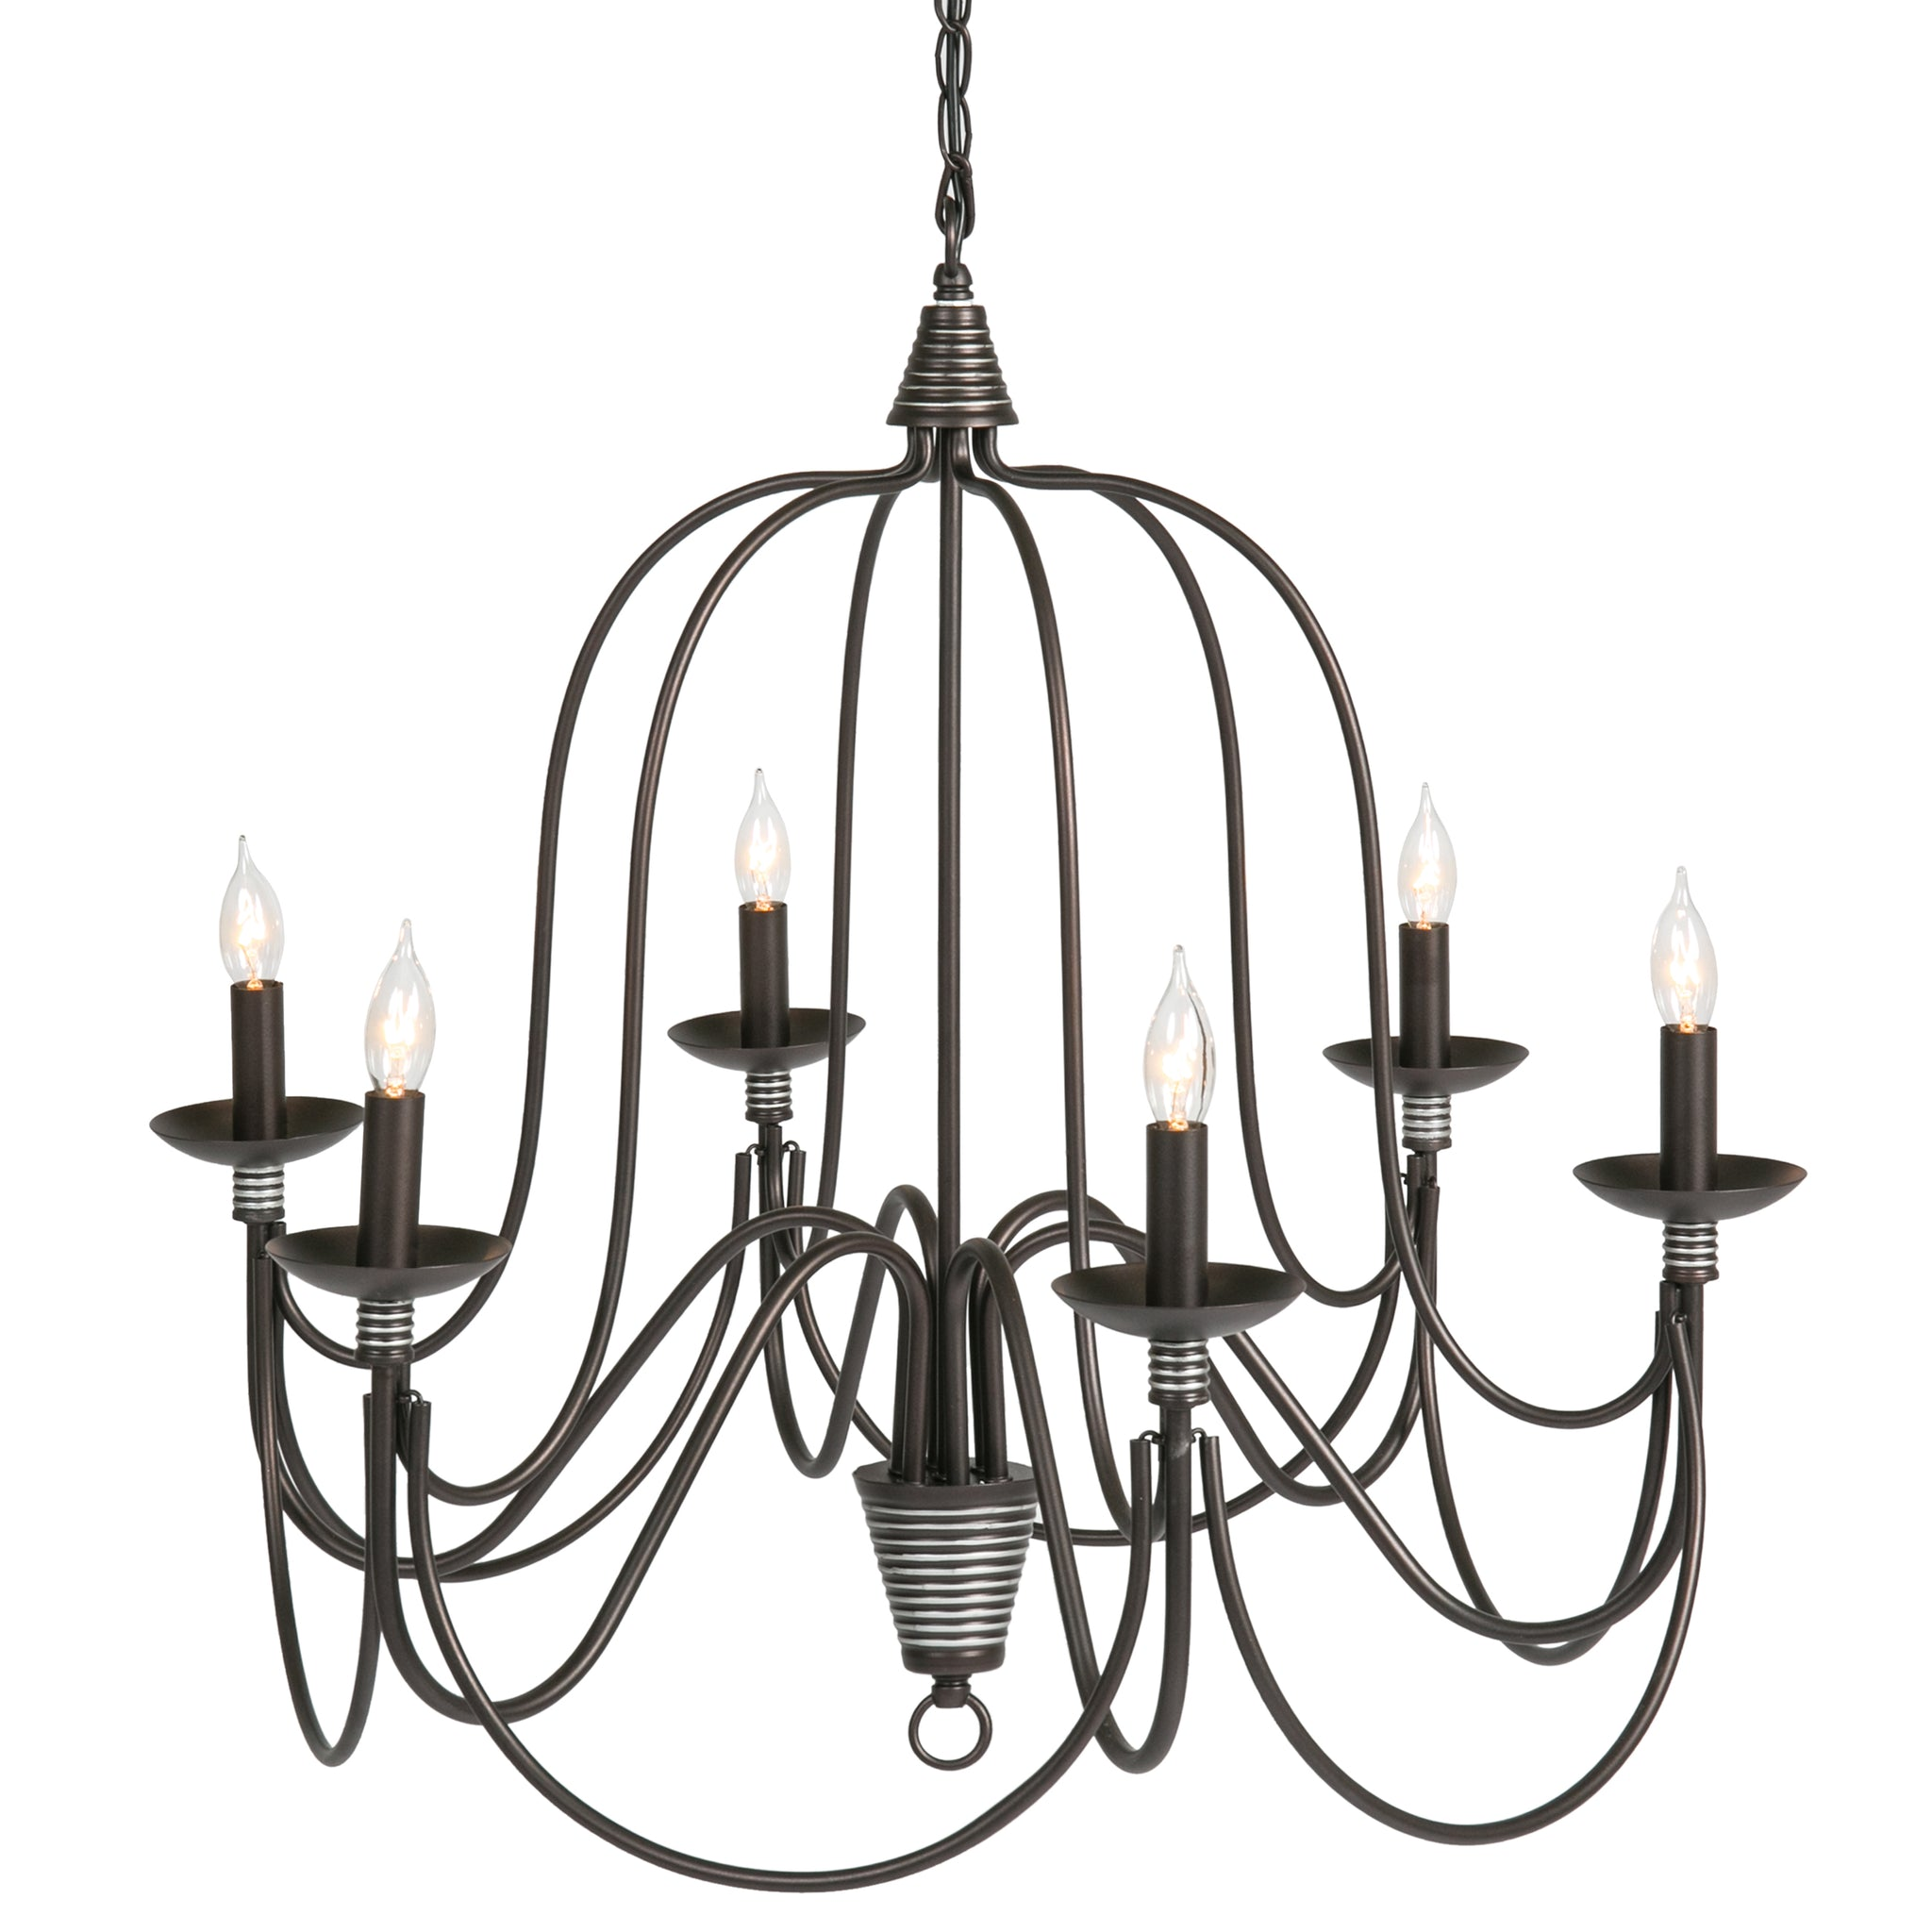 Best Choice Products Home 6 Light Ceiling Candle Chandelier Hanging Fi